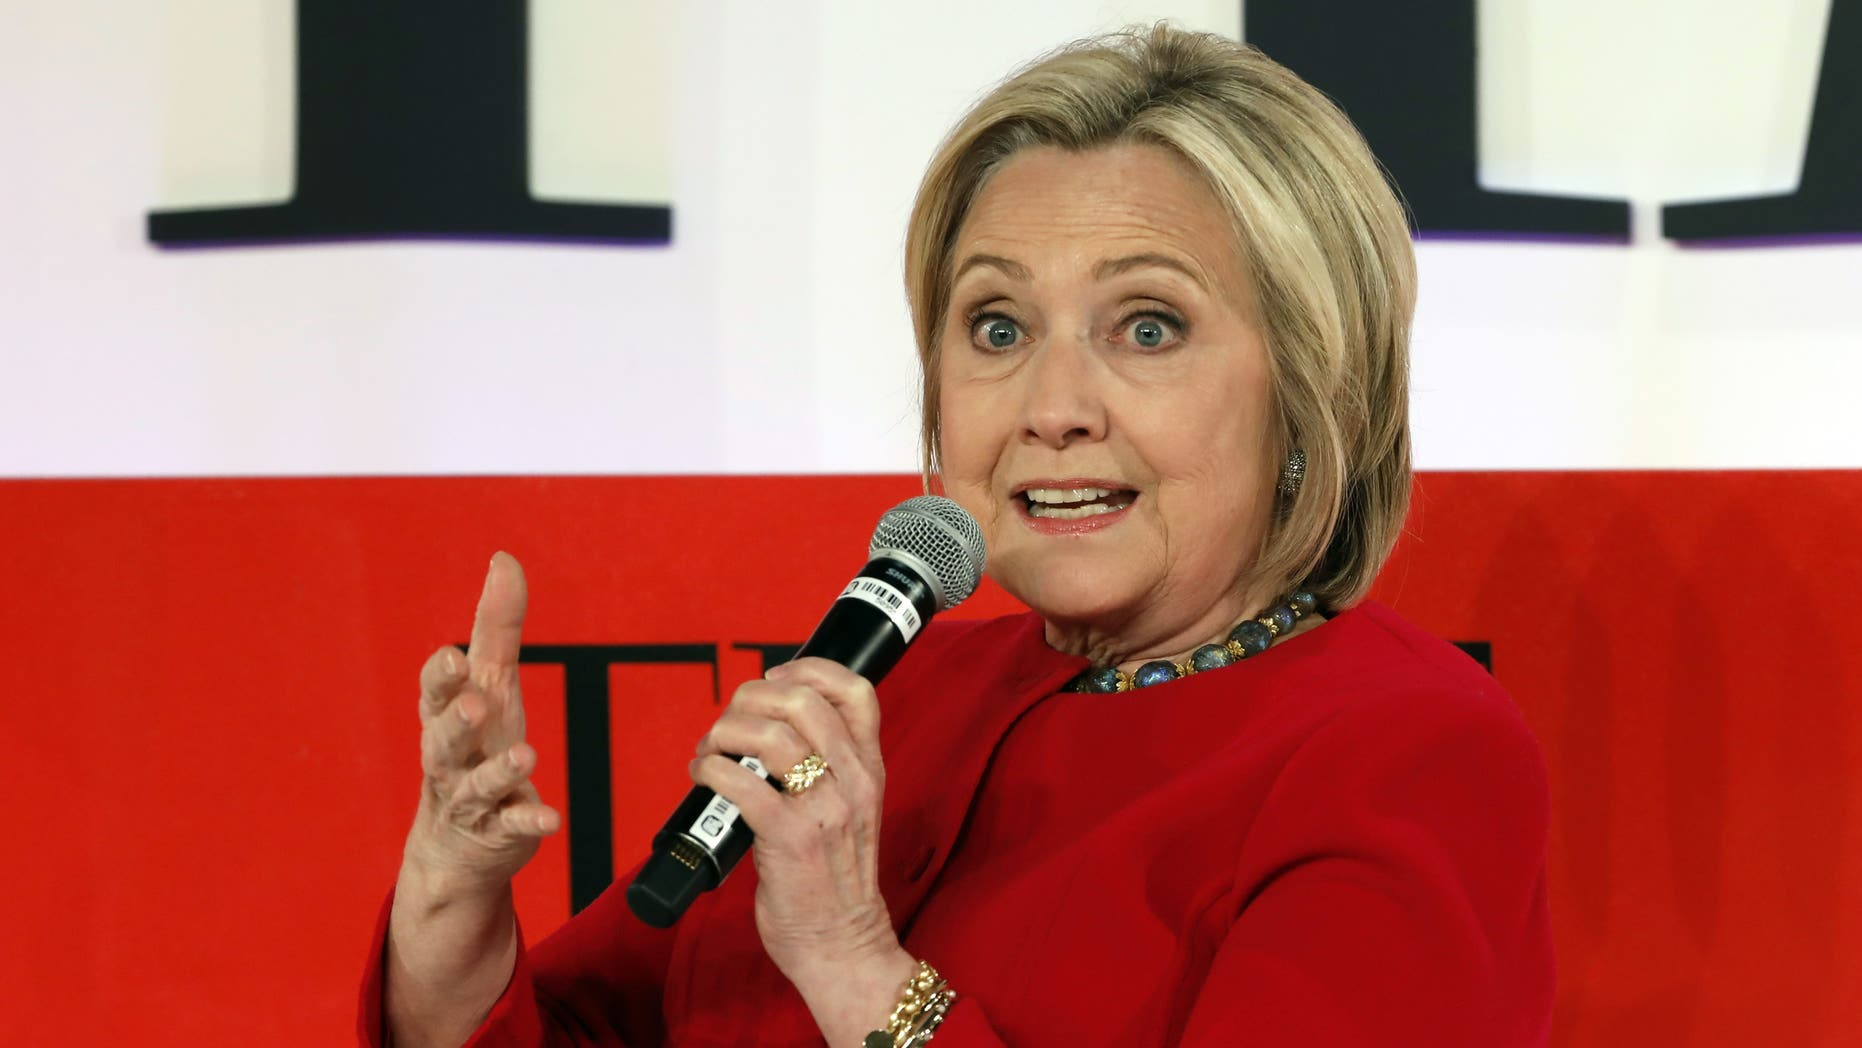 Hillary Clinton speaks during the TIME 100 Summit, in New York, Tuesday, April 23, 2019. (AP Photo/Richard Drew)